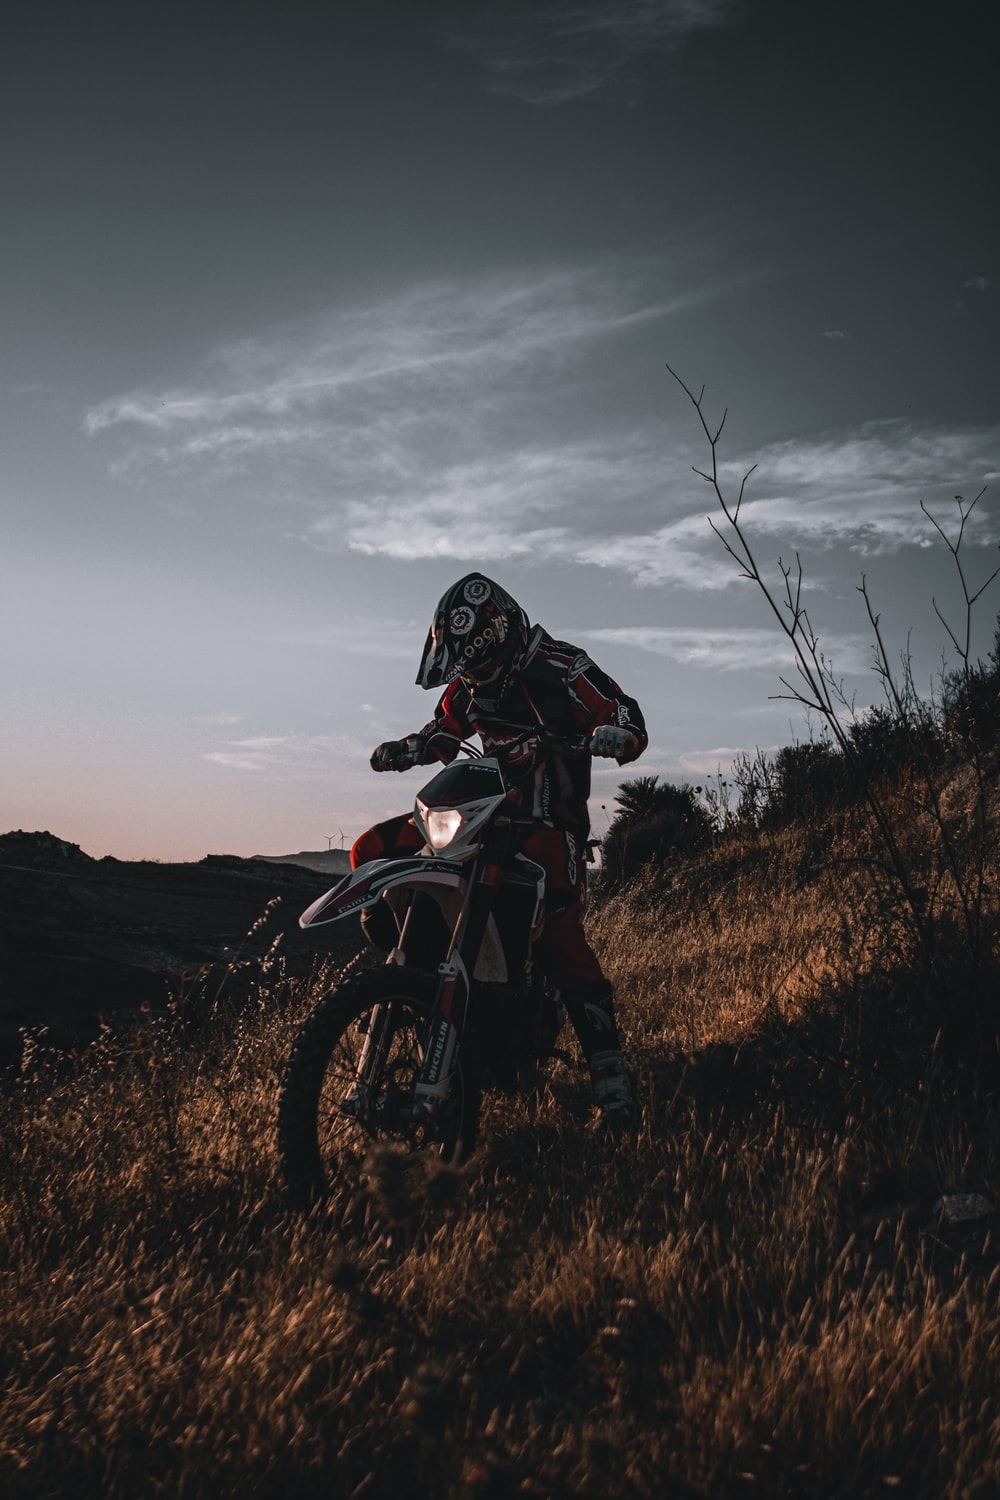 man in black and red motorcycle suit riding motocross dirt bike on brown grass field during